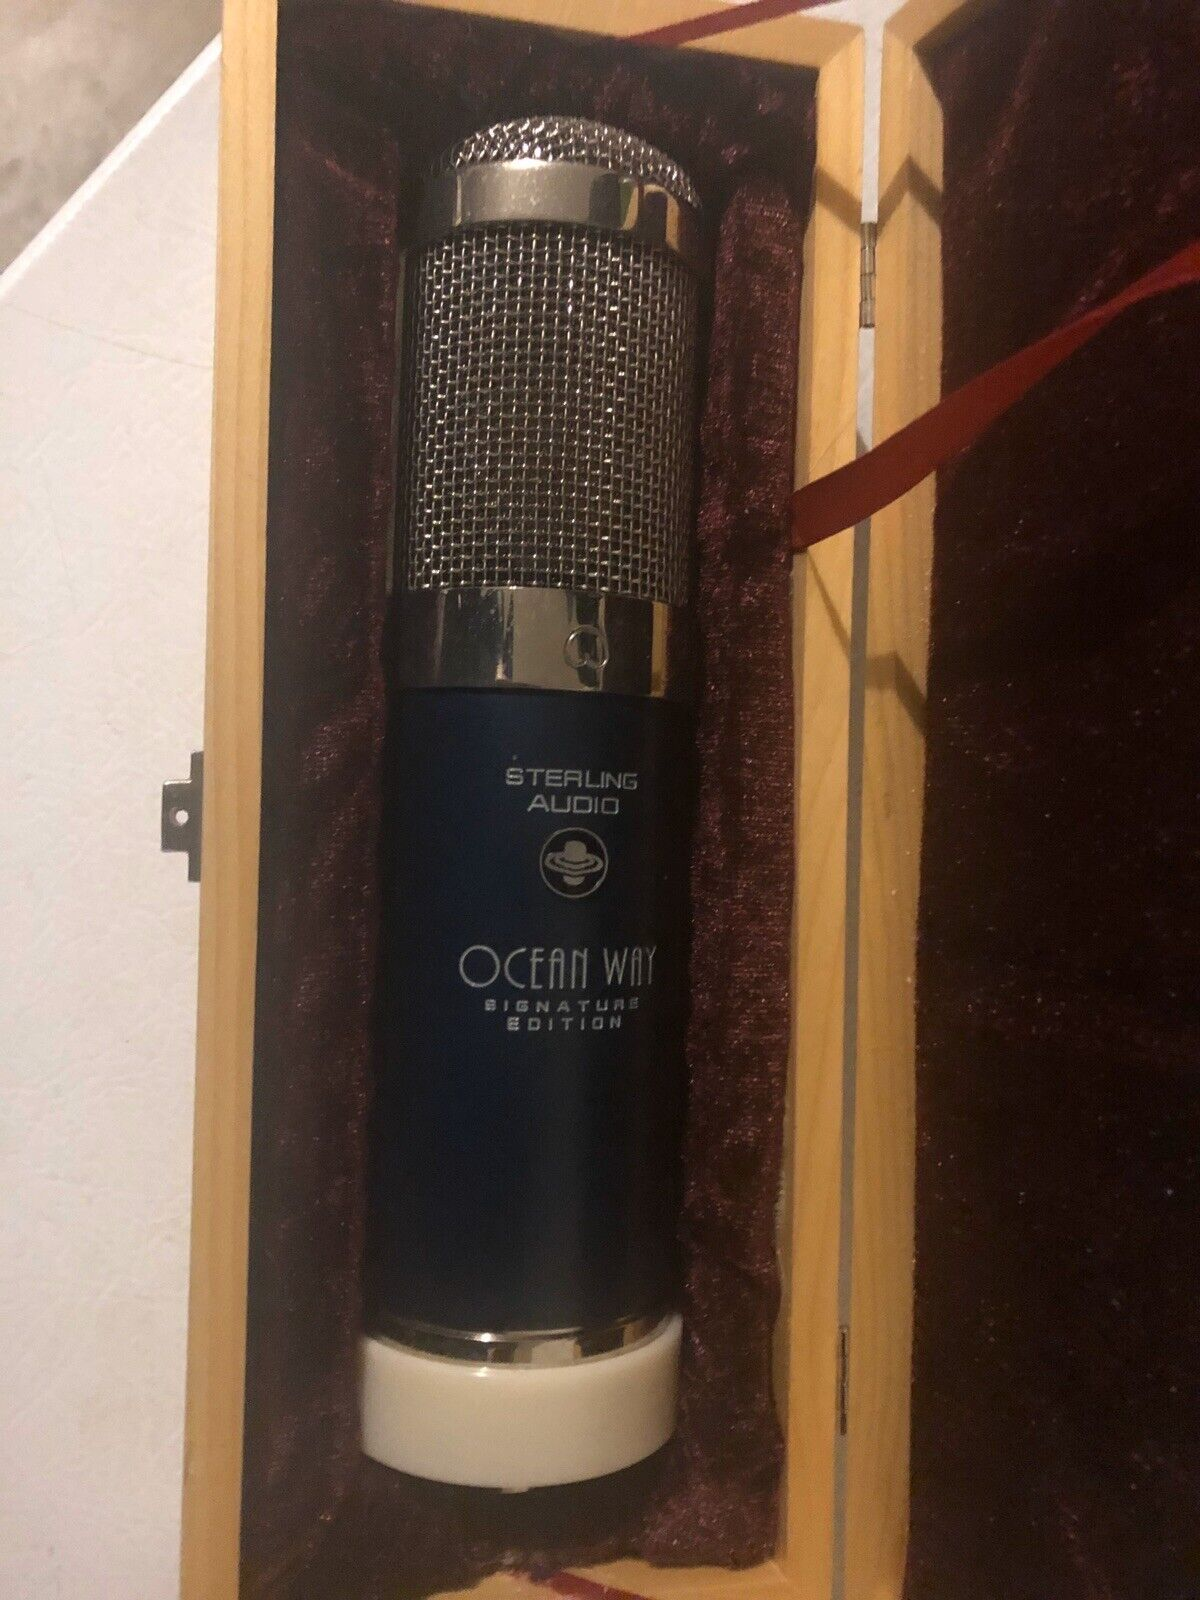 Sterling Audio Ocean Way Signiature Edition Allen Sides ST6050 Condenser Mic. Buy it now for 500.00